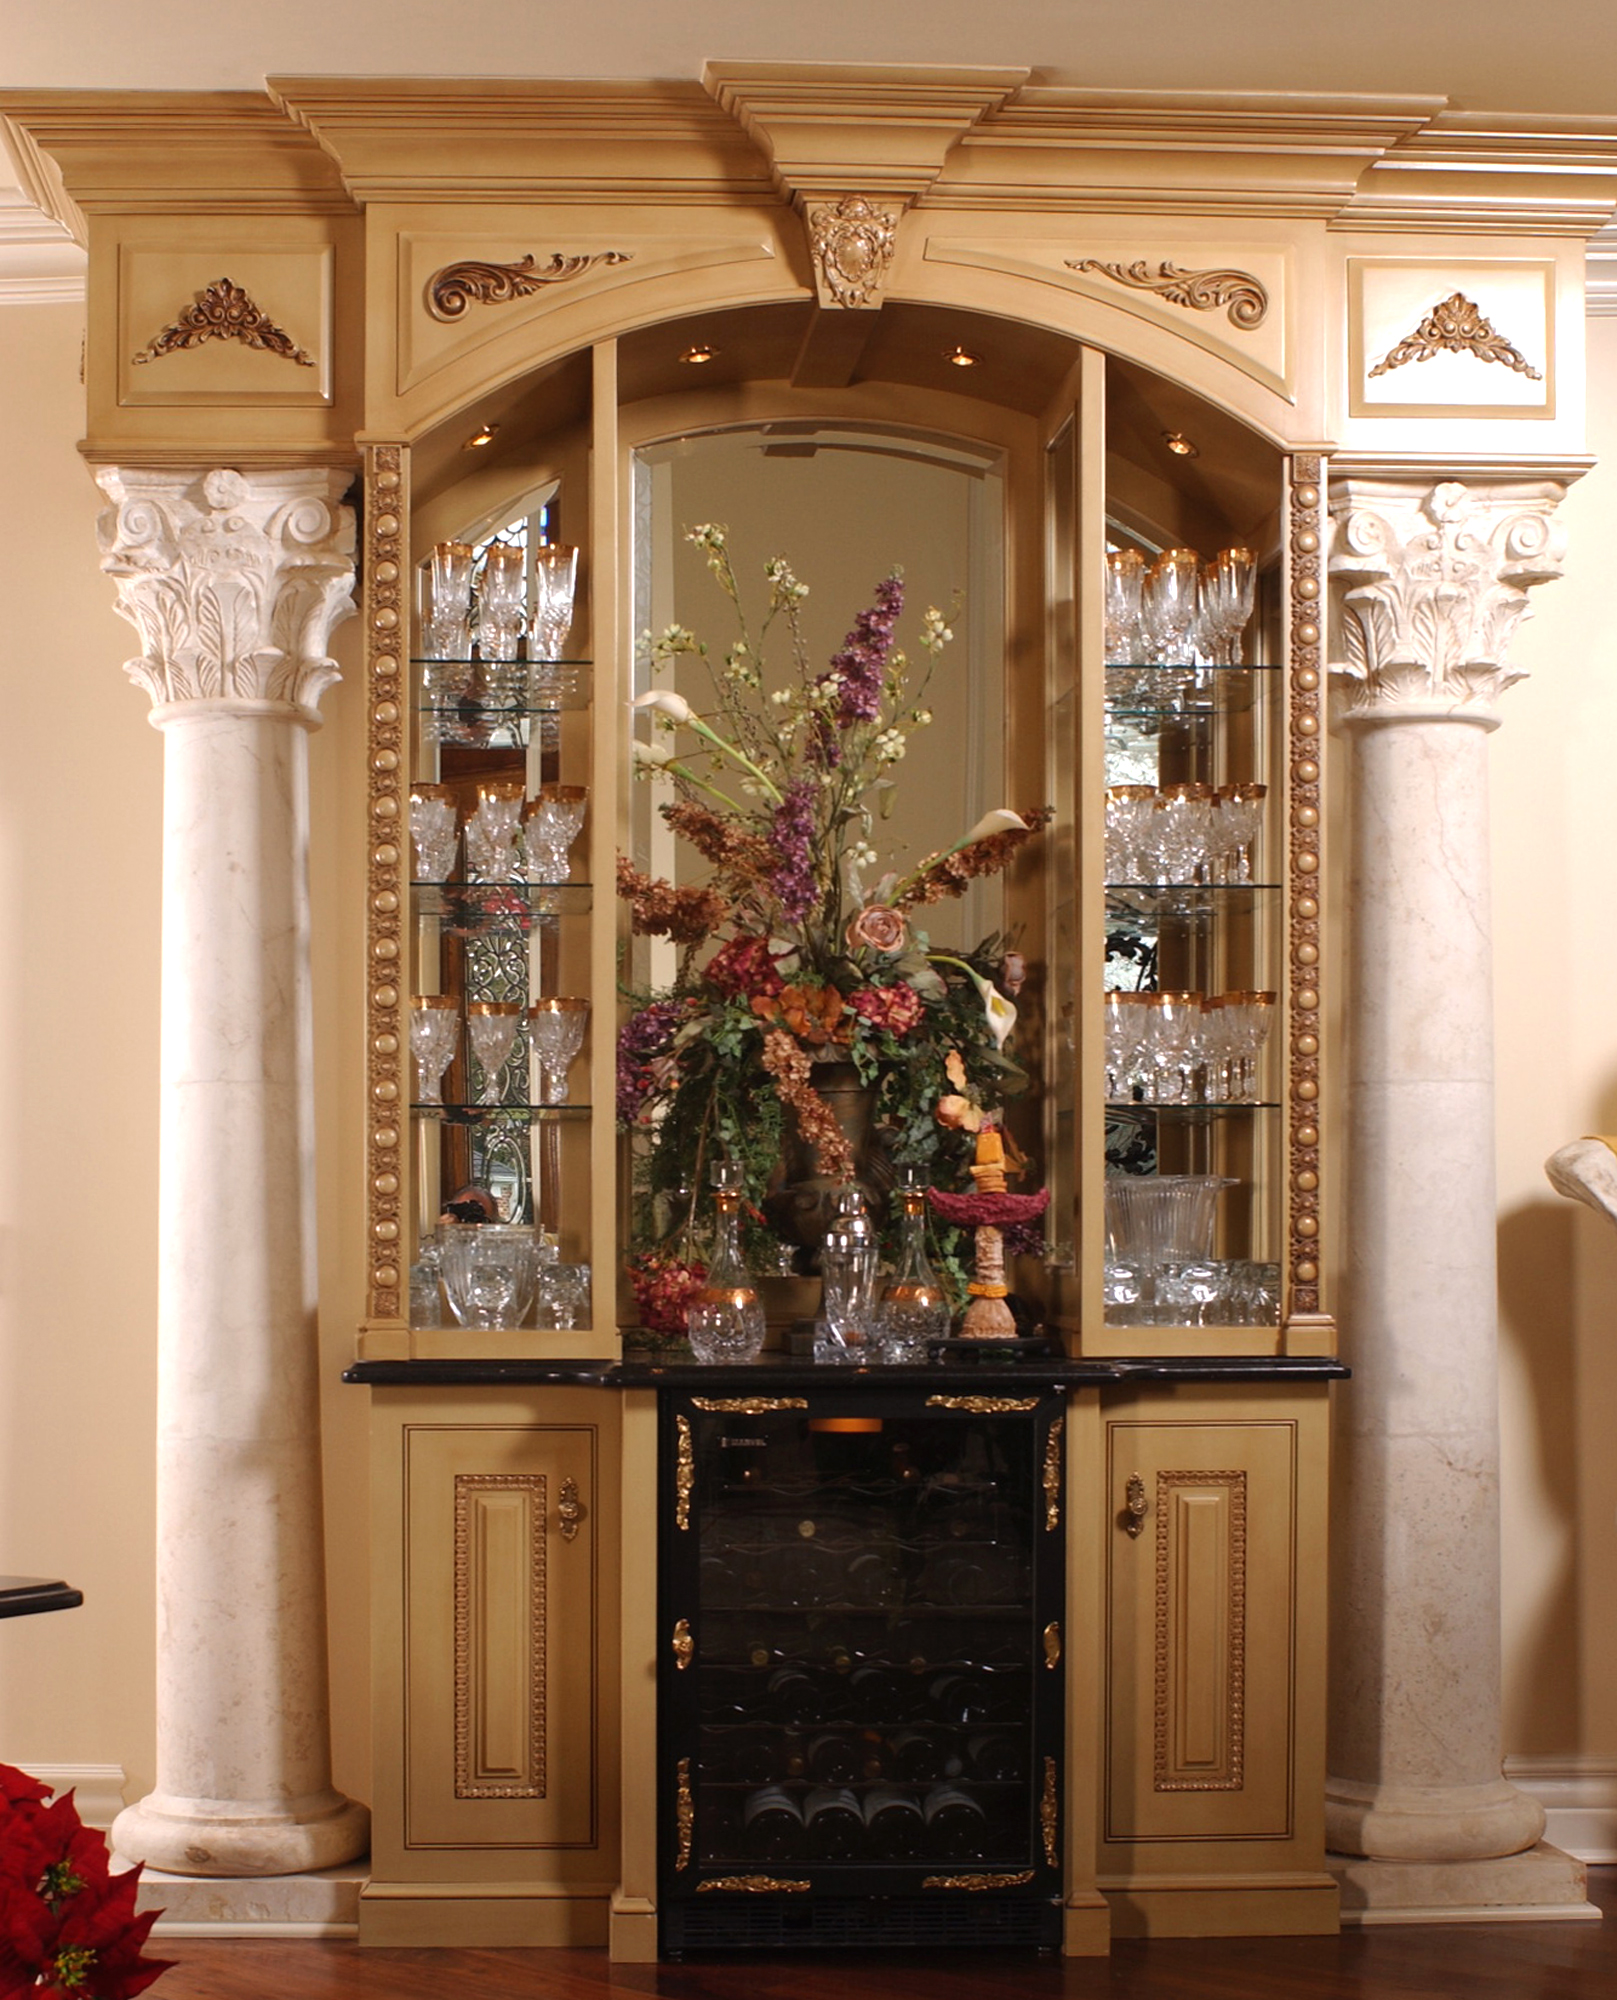 Guidry_1617x2000_2 Corinthian at china cabinet_DSC_0113.jpg